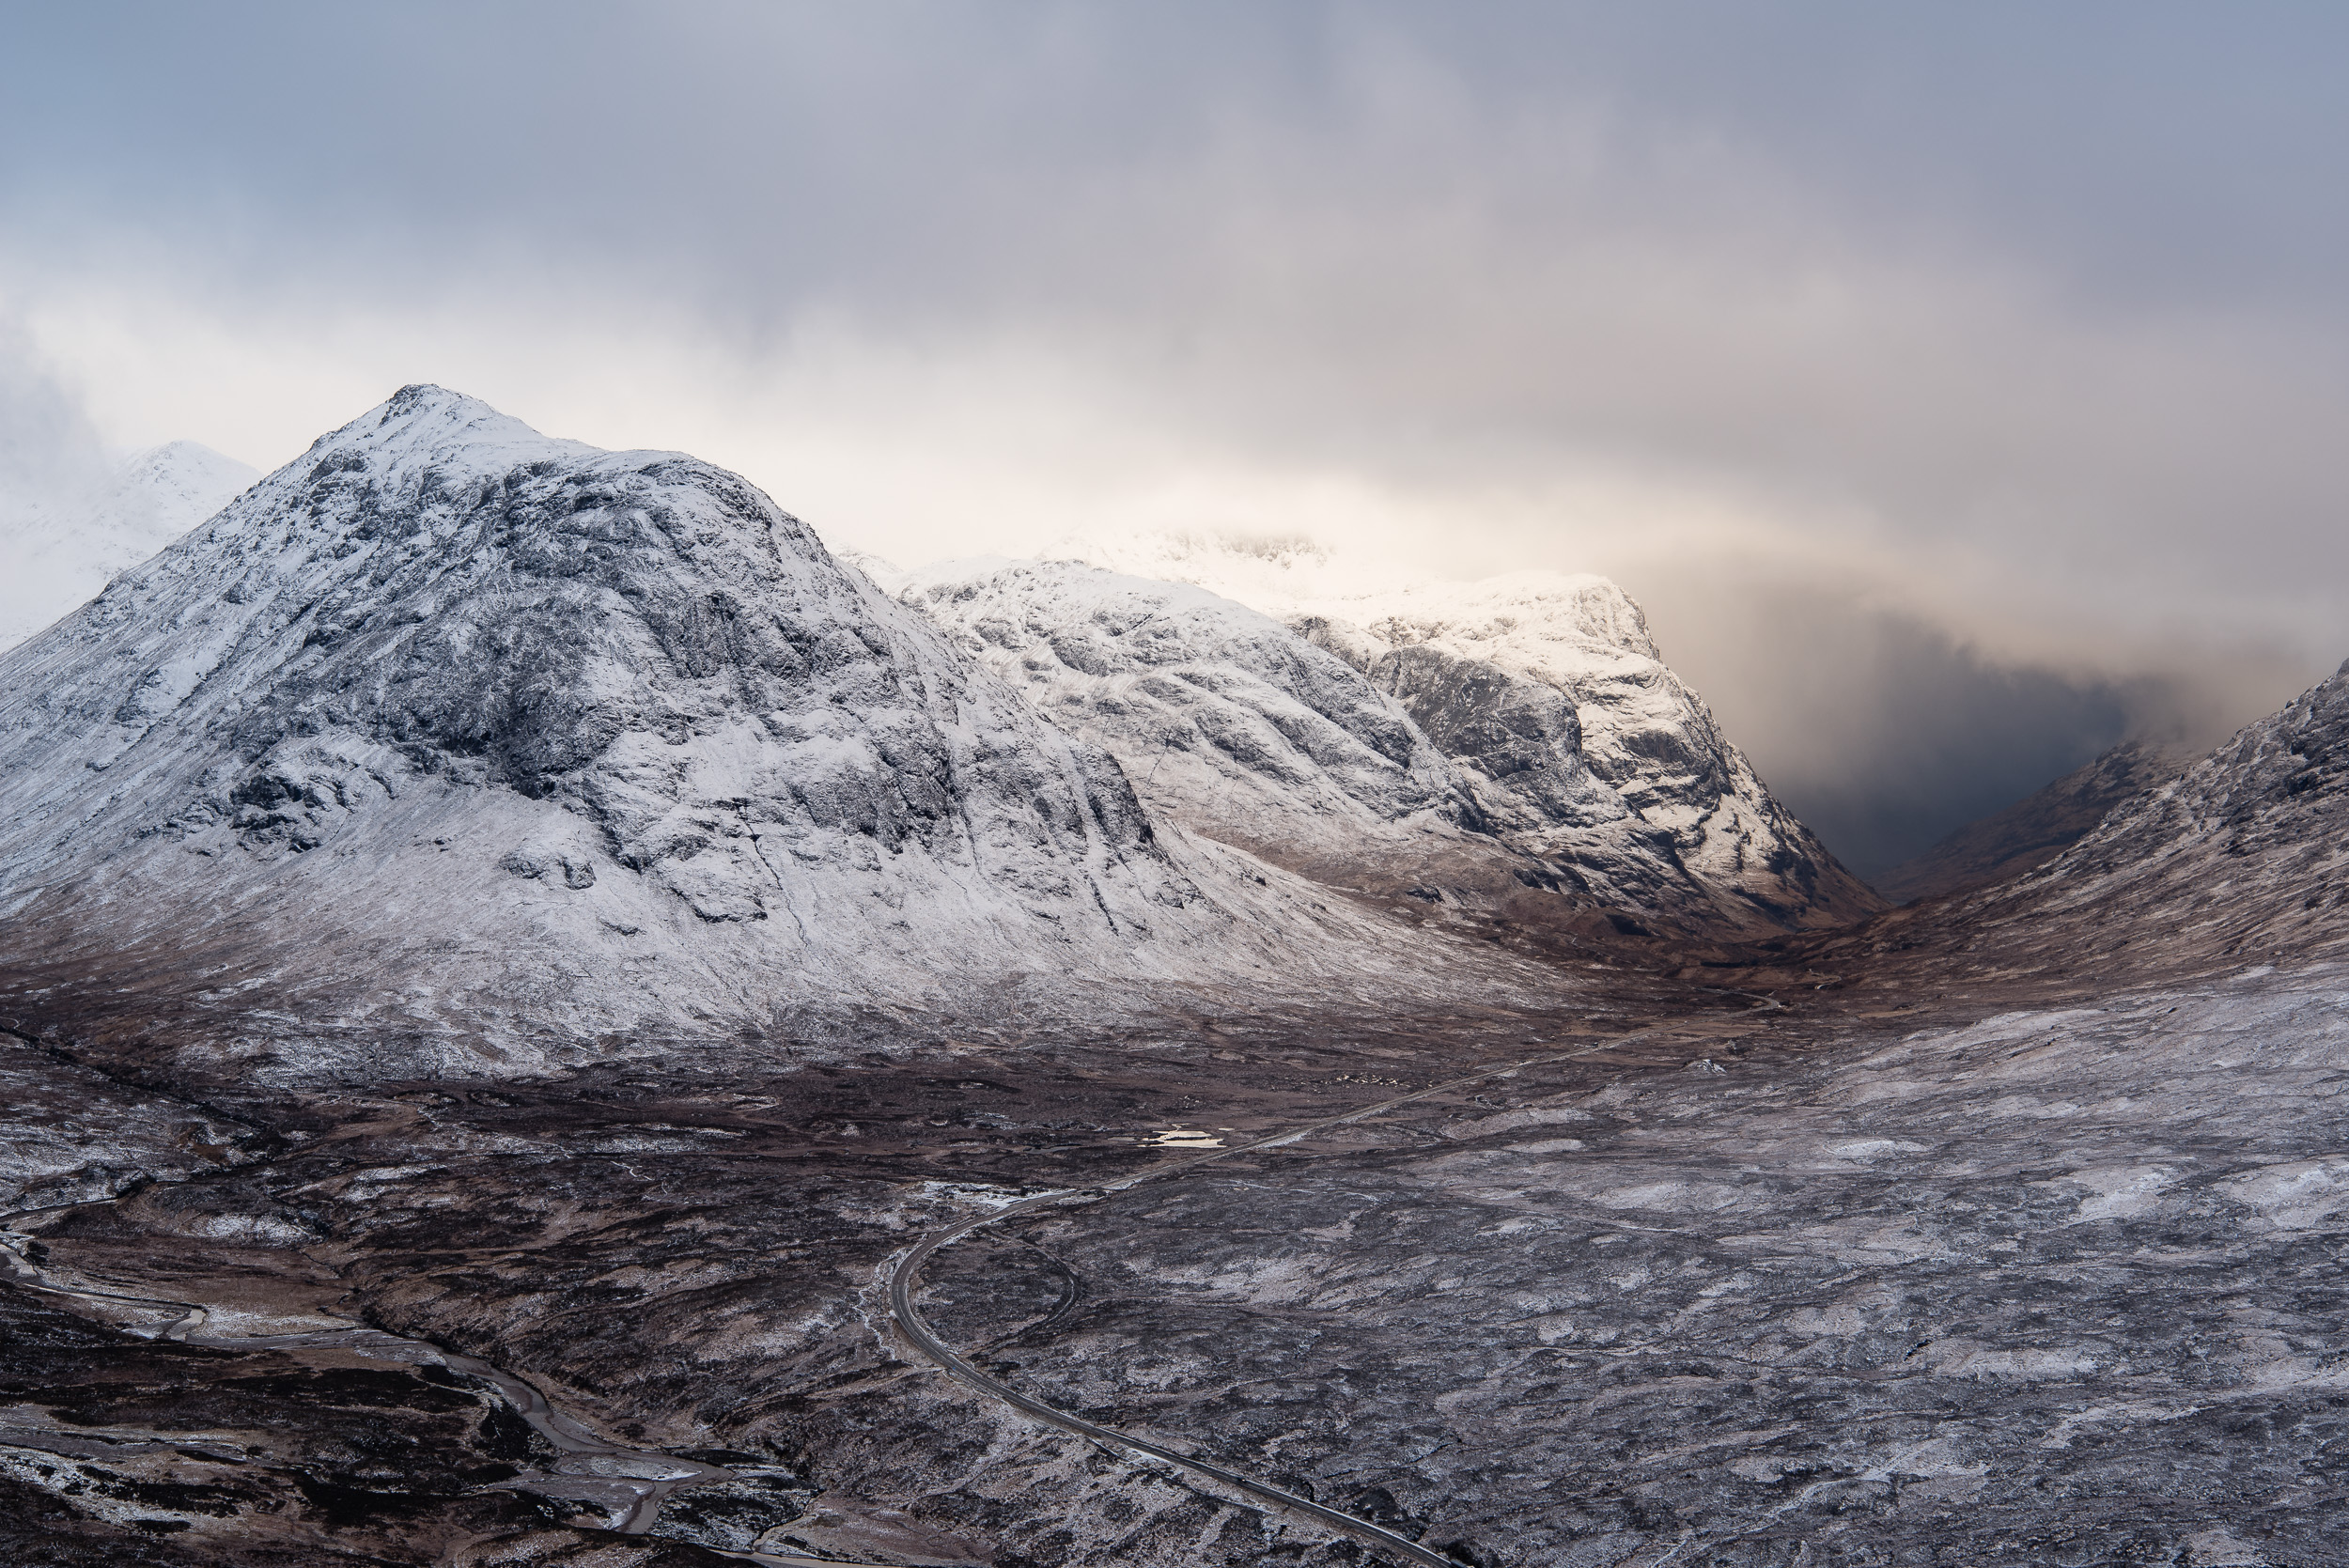 20170302-Stob nan Cabar and Glencoe.jpg